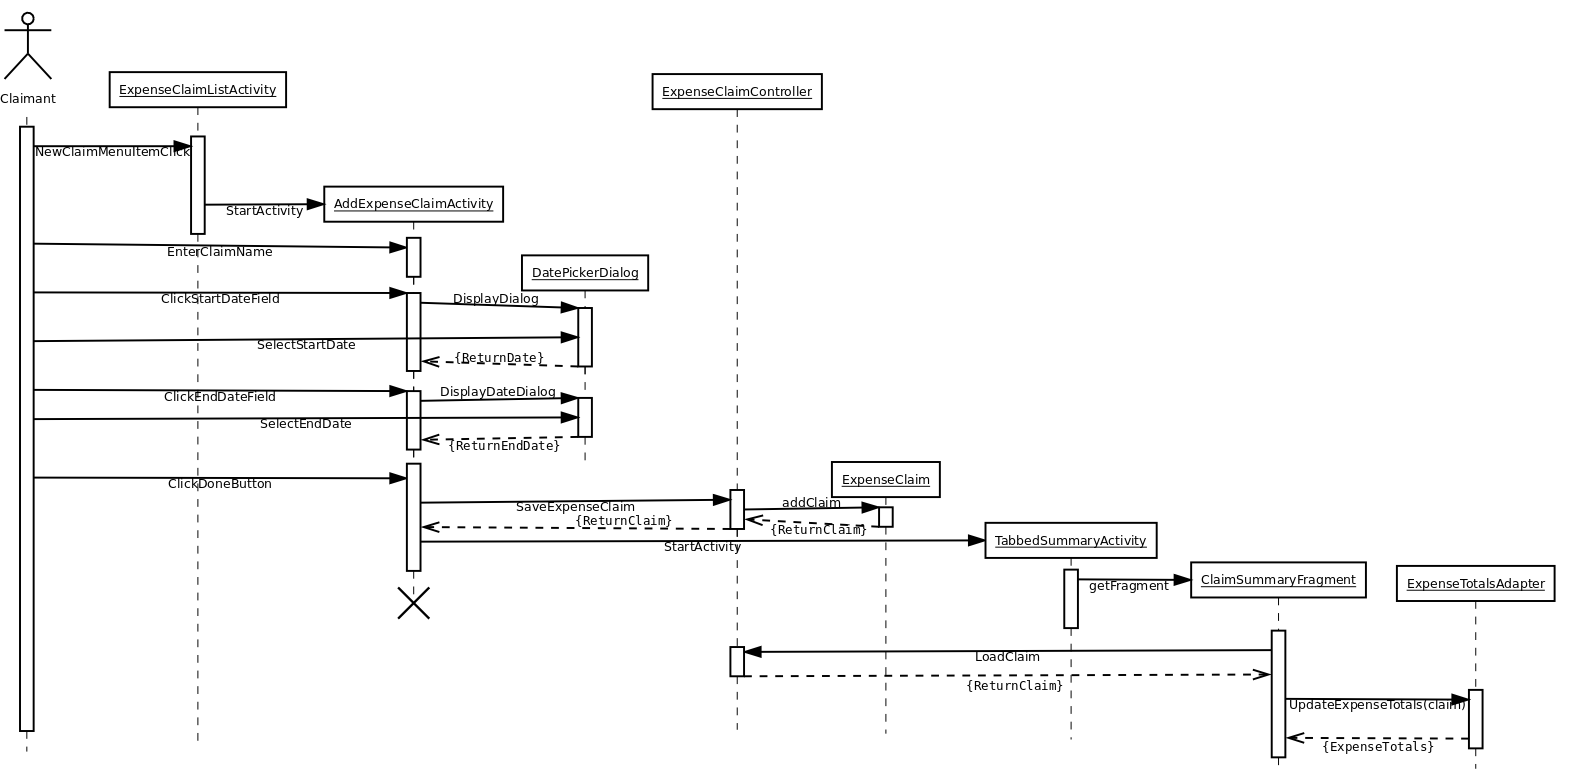 Uml sequence diagram rostarsynergisticsshinyexpensetracker wiki sequence diagram for a claimant adding a new claim to the system pooptronica